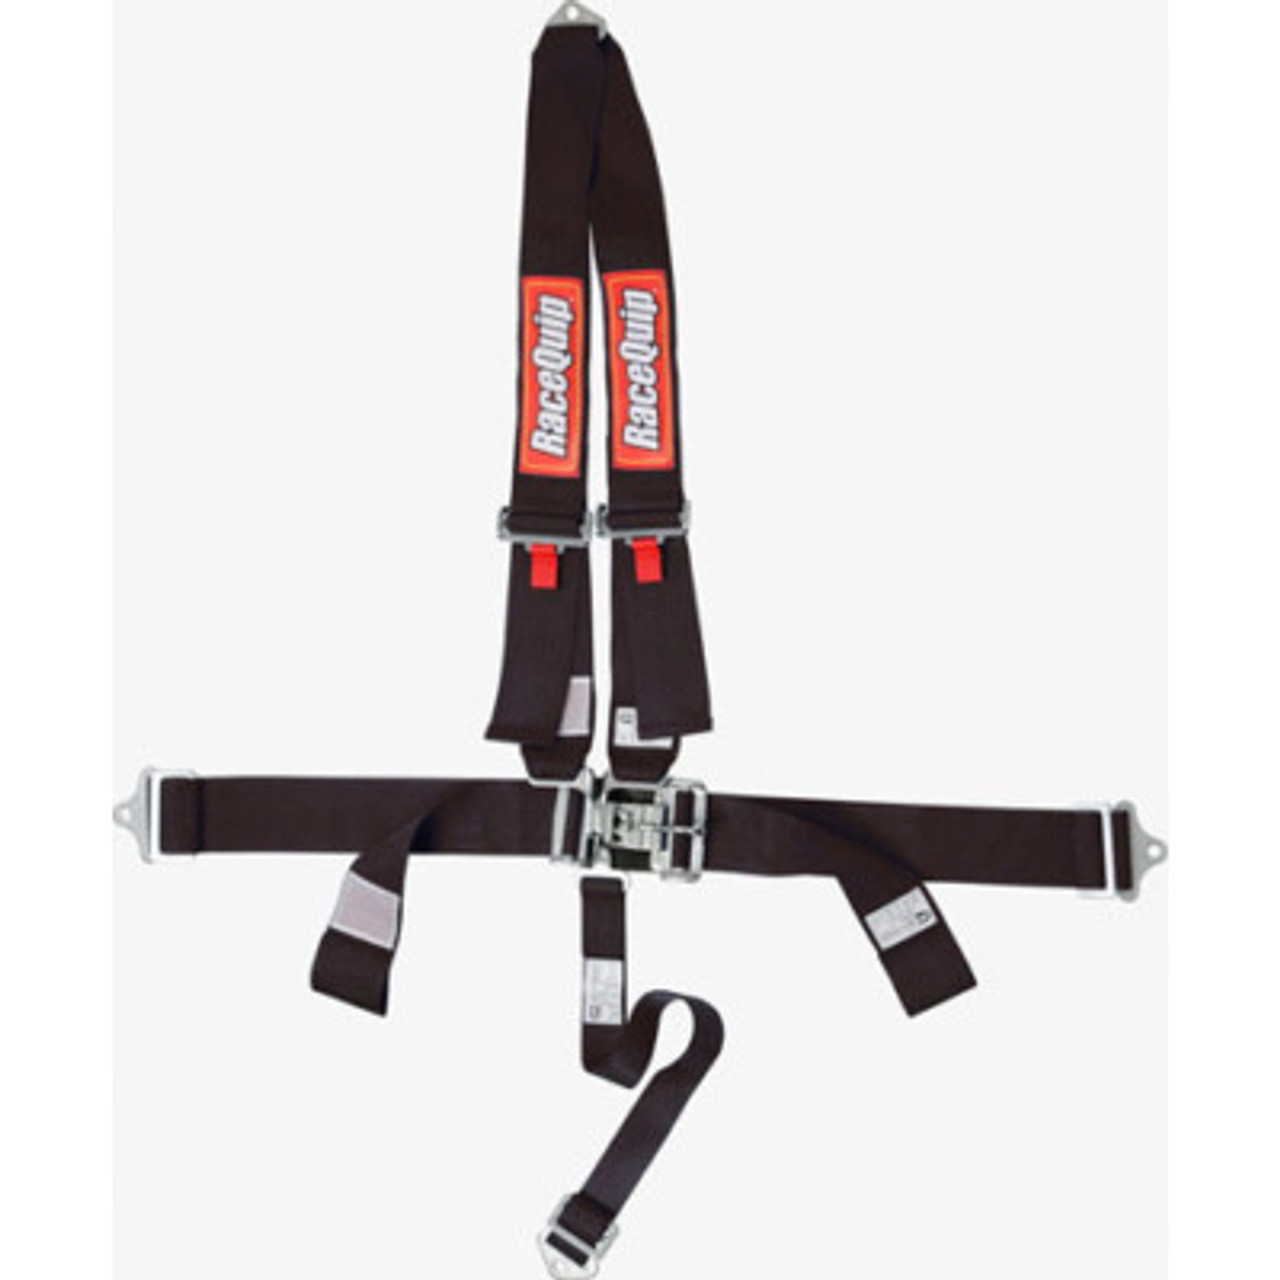 RQP713003, Harness, 4 Point, Latch and Link, SFI 16.1, Pull Down Adjust, Bolt-On / Wrap Around, V-Type Harness, Black, Kit